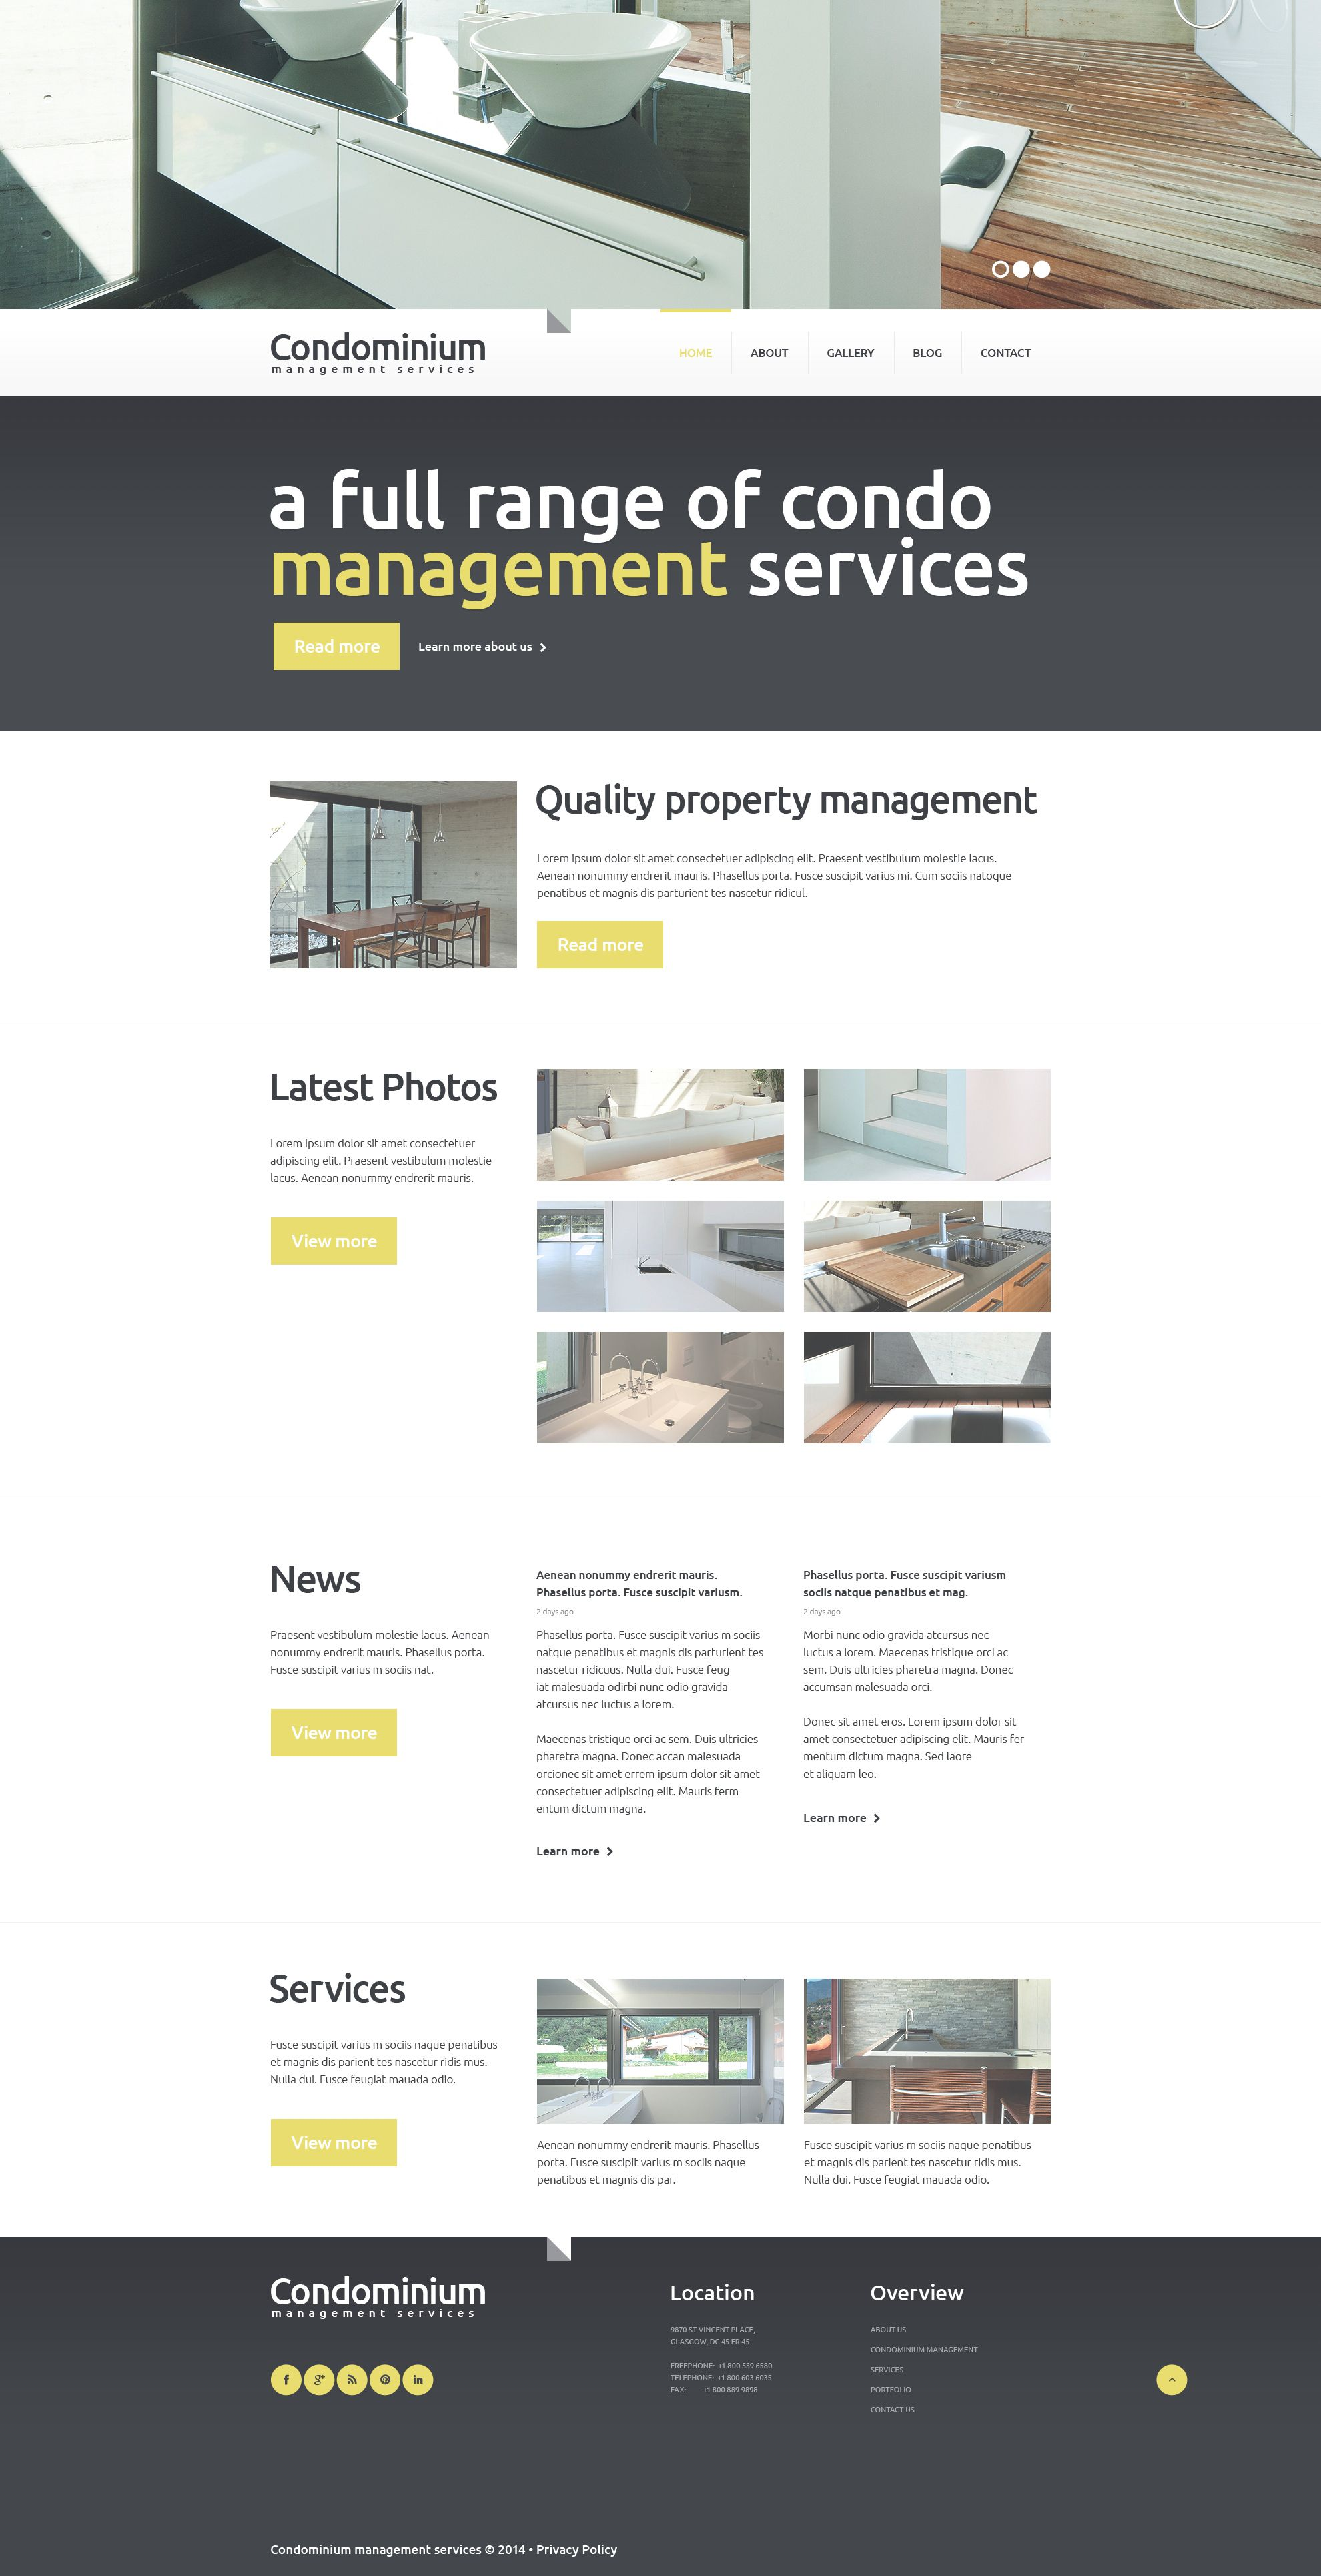 Mortgage Responsive Website Template #49241 | Website ...